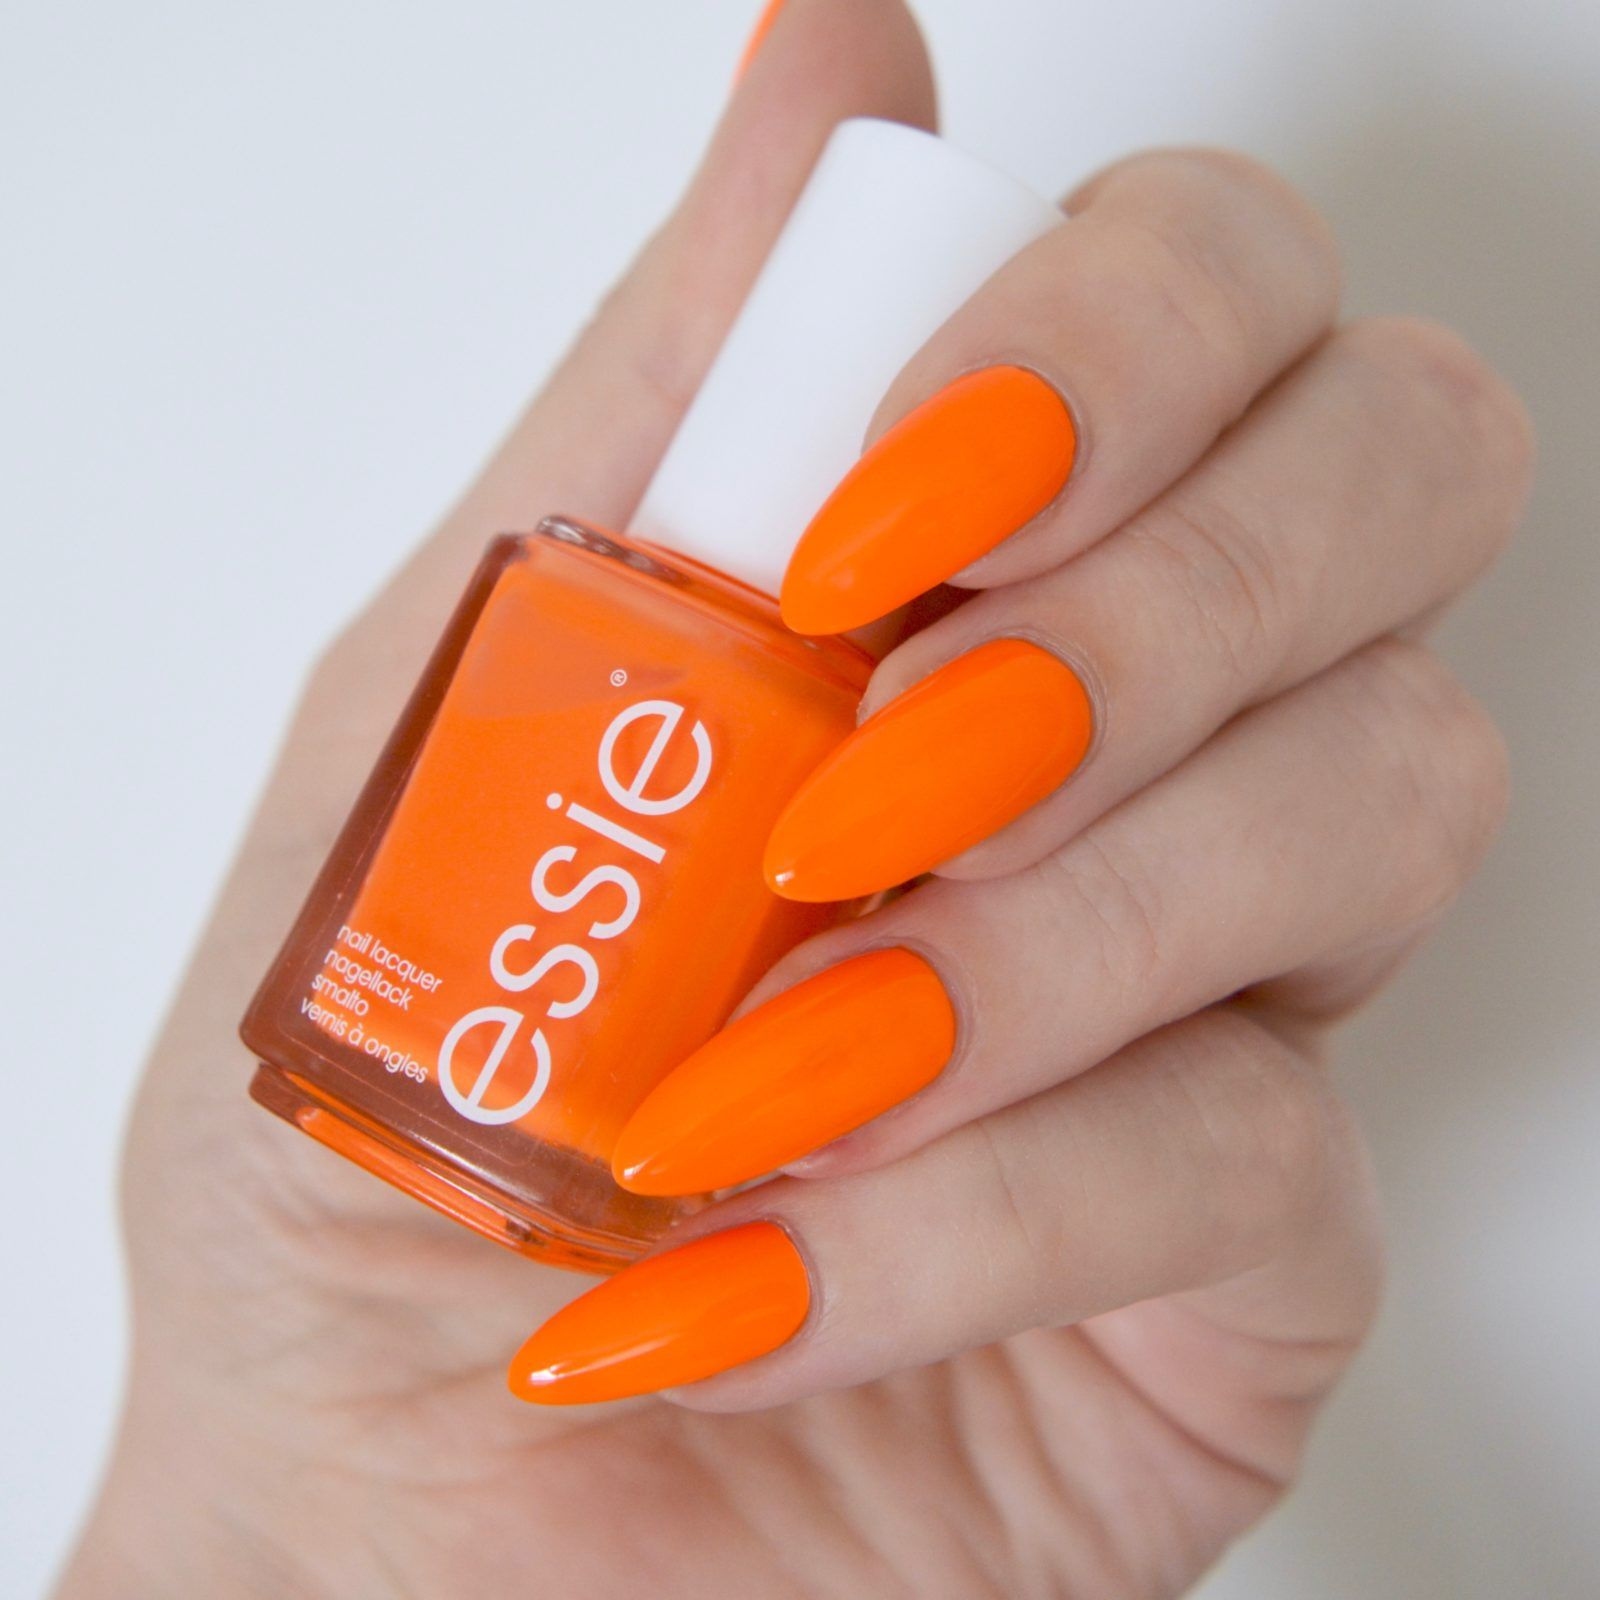 Essie Neon 2017 Review With Swatches | Pinterest | Neon orange nails ...